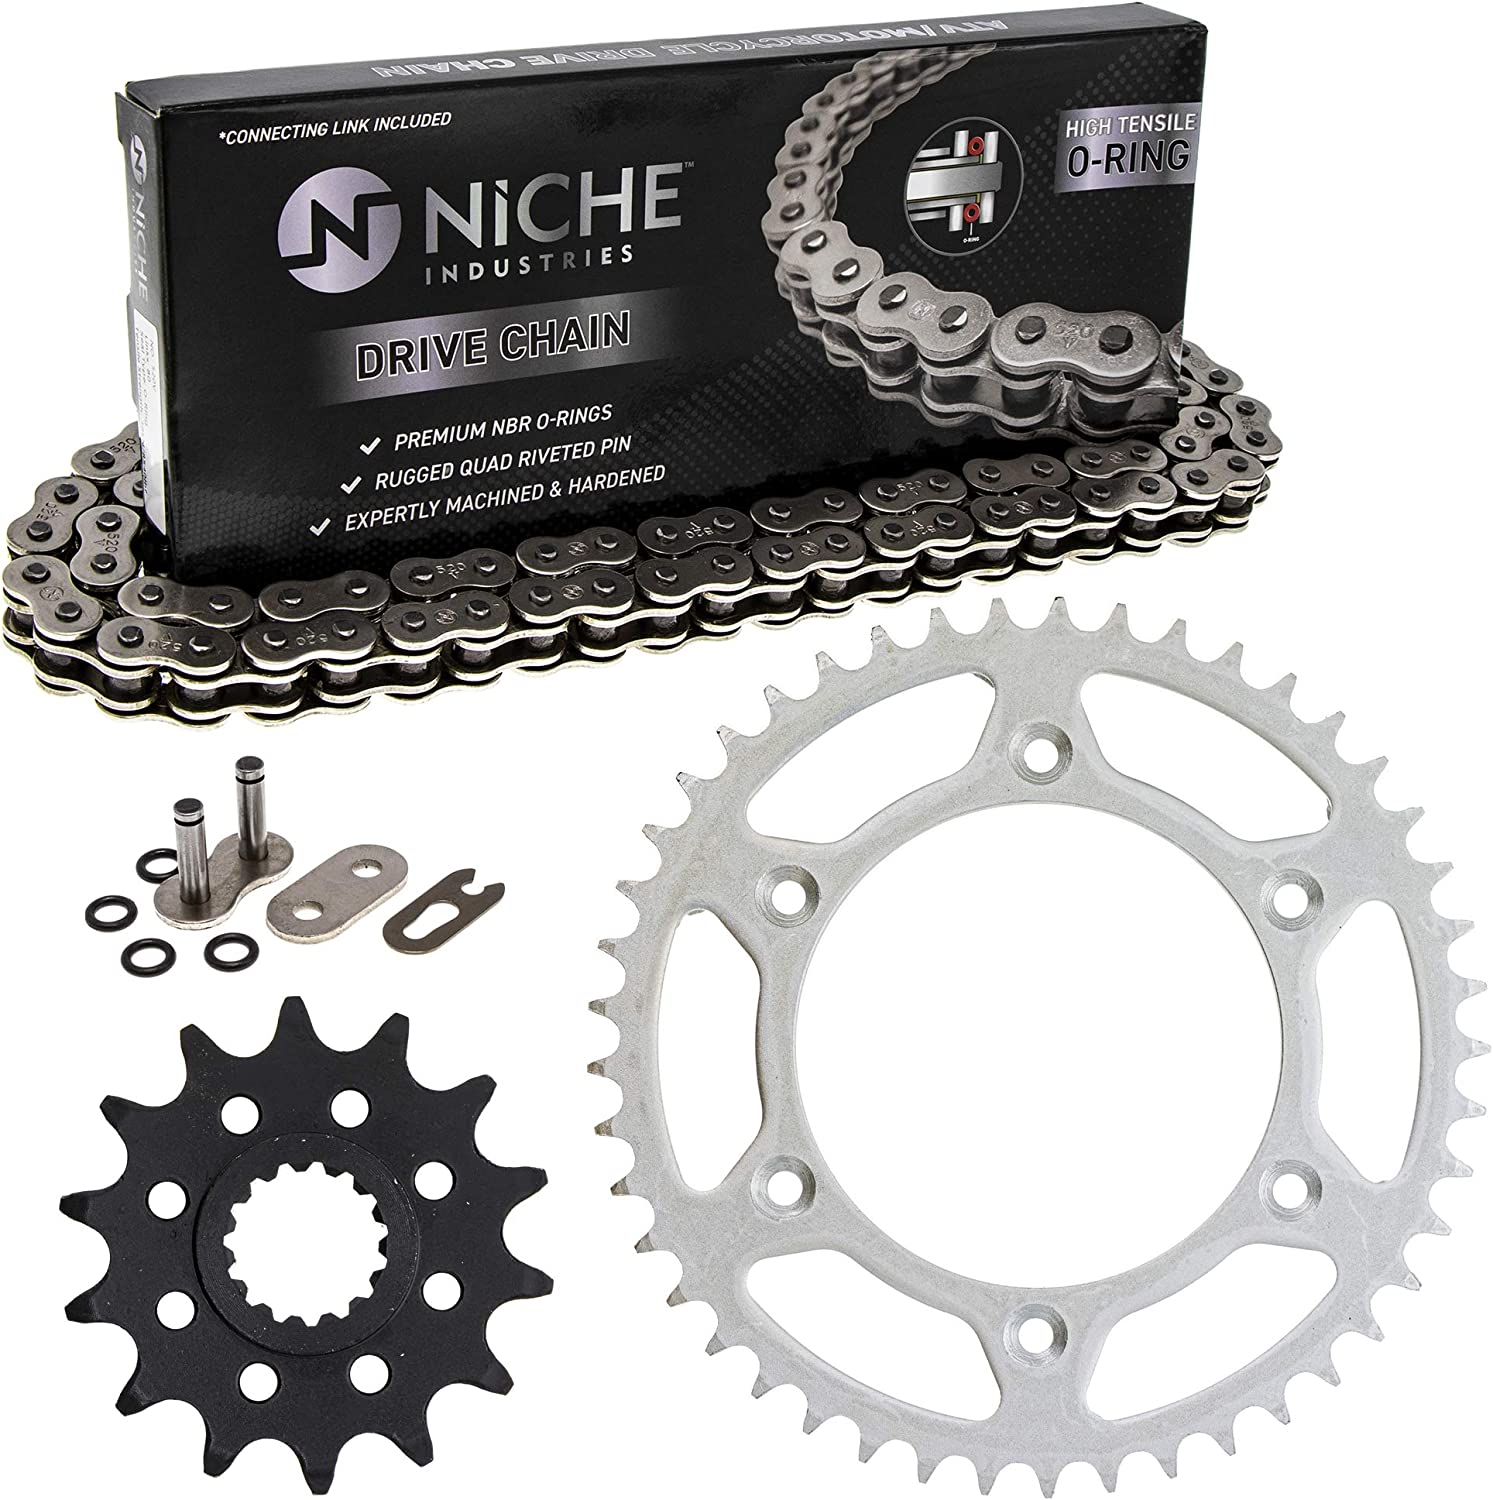 NICHE Drive Sprocket Chain Combo for KTM 125 EXC Six Days 360 MXC 540 SXS Front 14 Rear 45 Tooth 520V O-Ring 118 Links